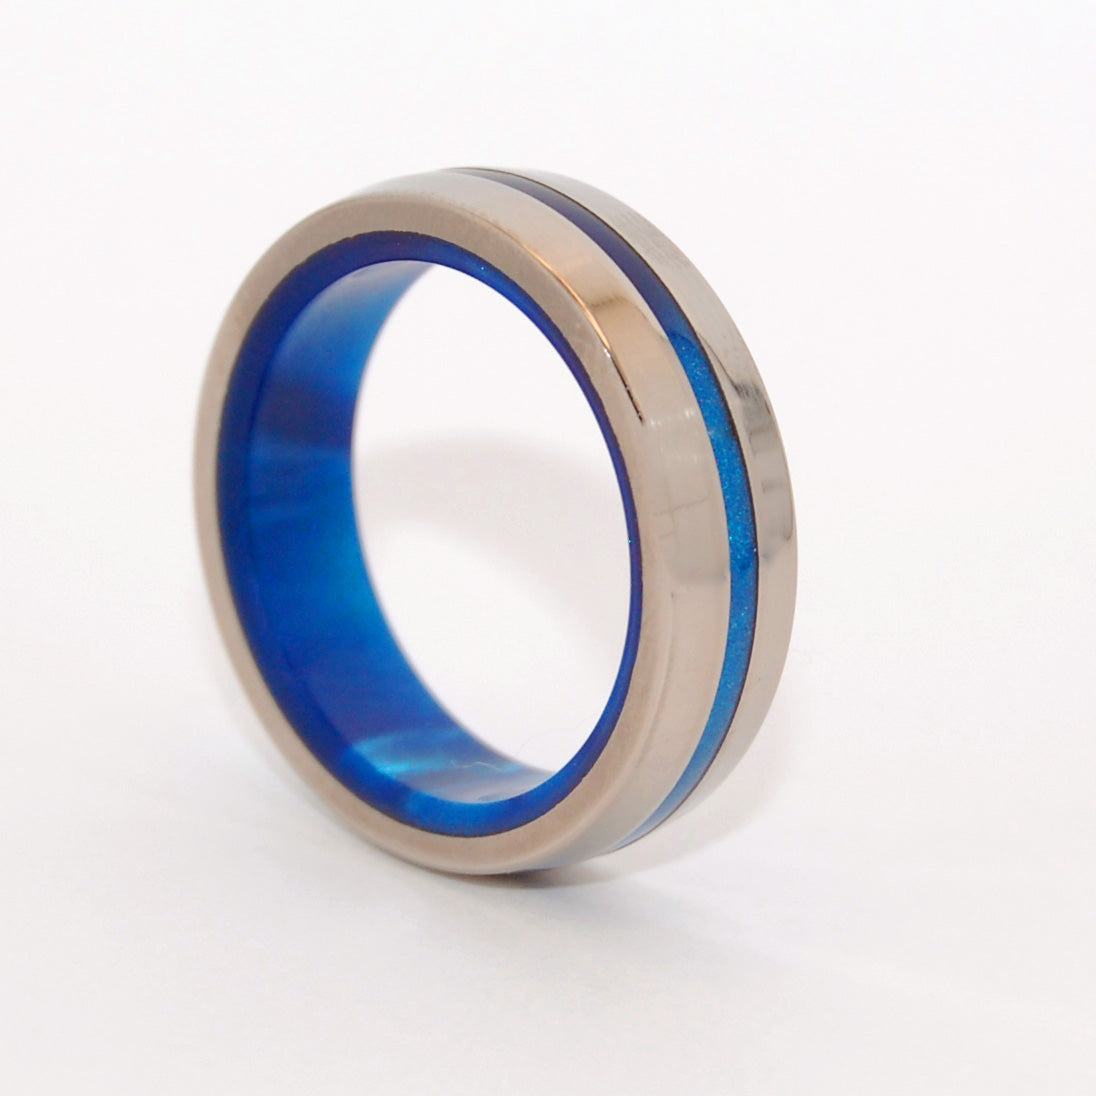 DOUBLY INSPIRED BY BLUE | Blue Marbled Opalescent Resin & Titanium Wedding Rings - Minter and Richter Designs